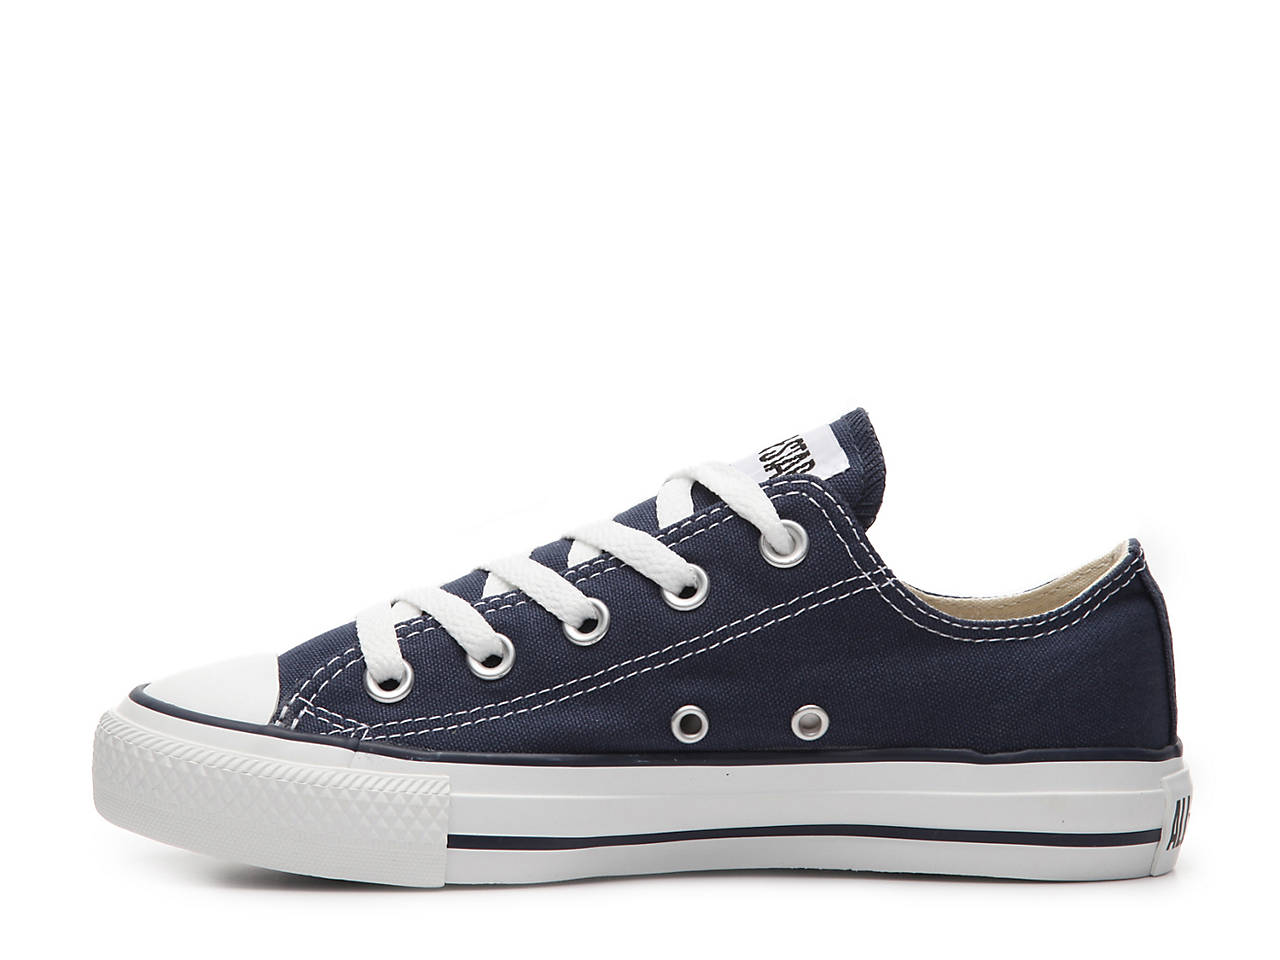 c430e77d54bc Converse Chuck Taylor All Star Sneaker - Women s Women s Shoes